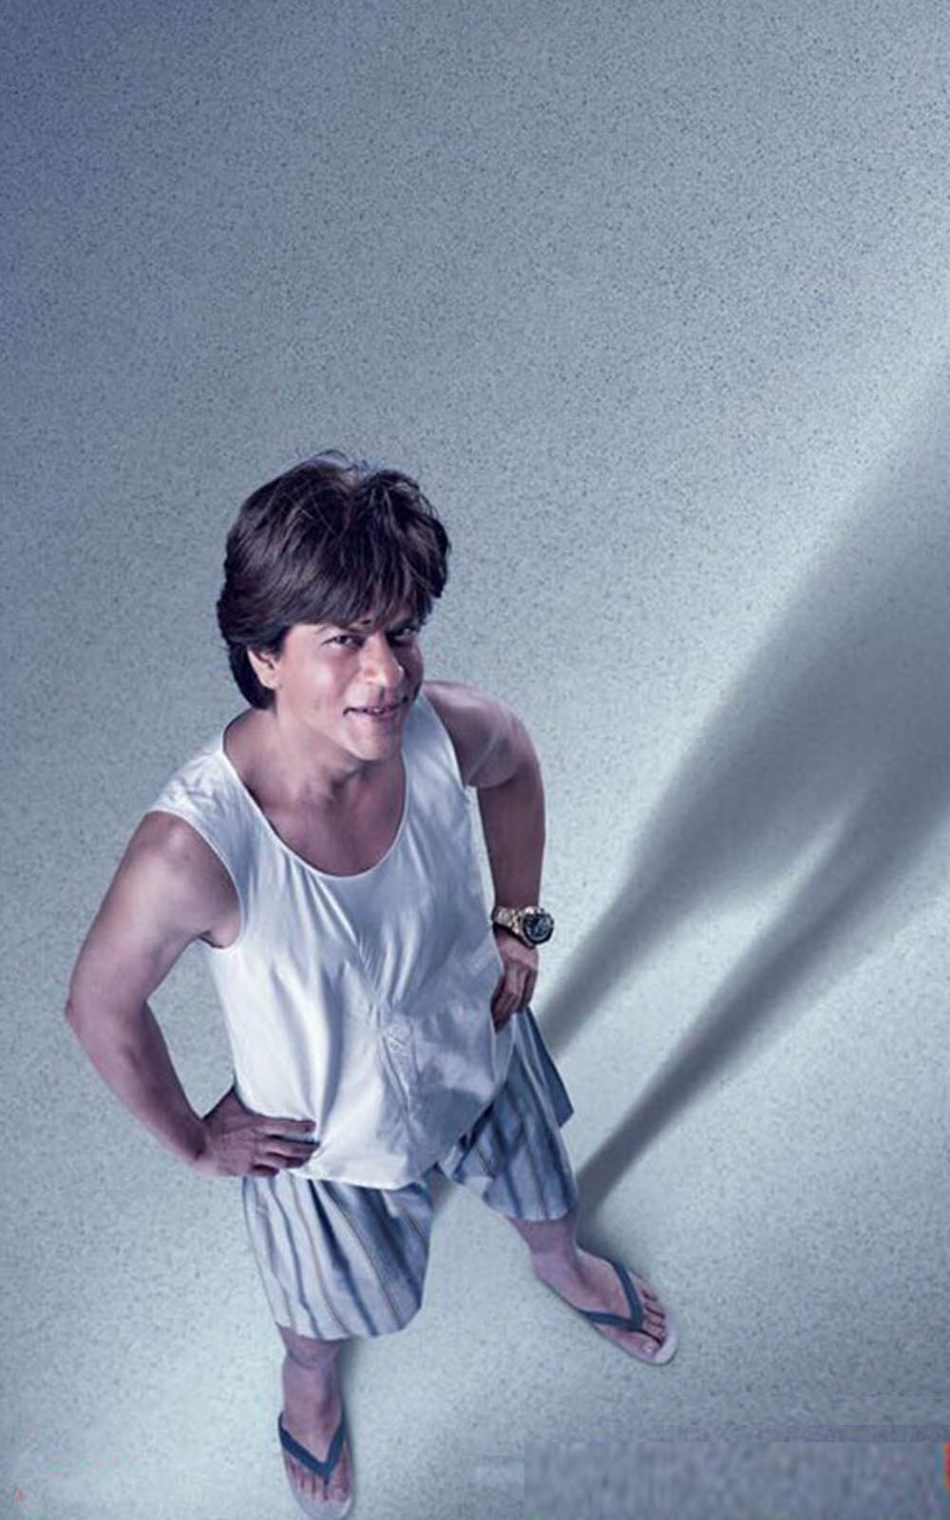 download shah rukh khan in zero free pure 4k ultra hd mobile wallpaper